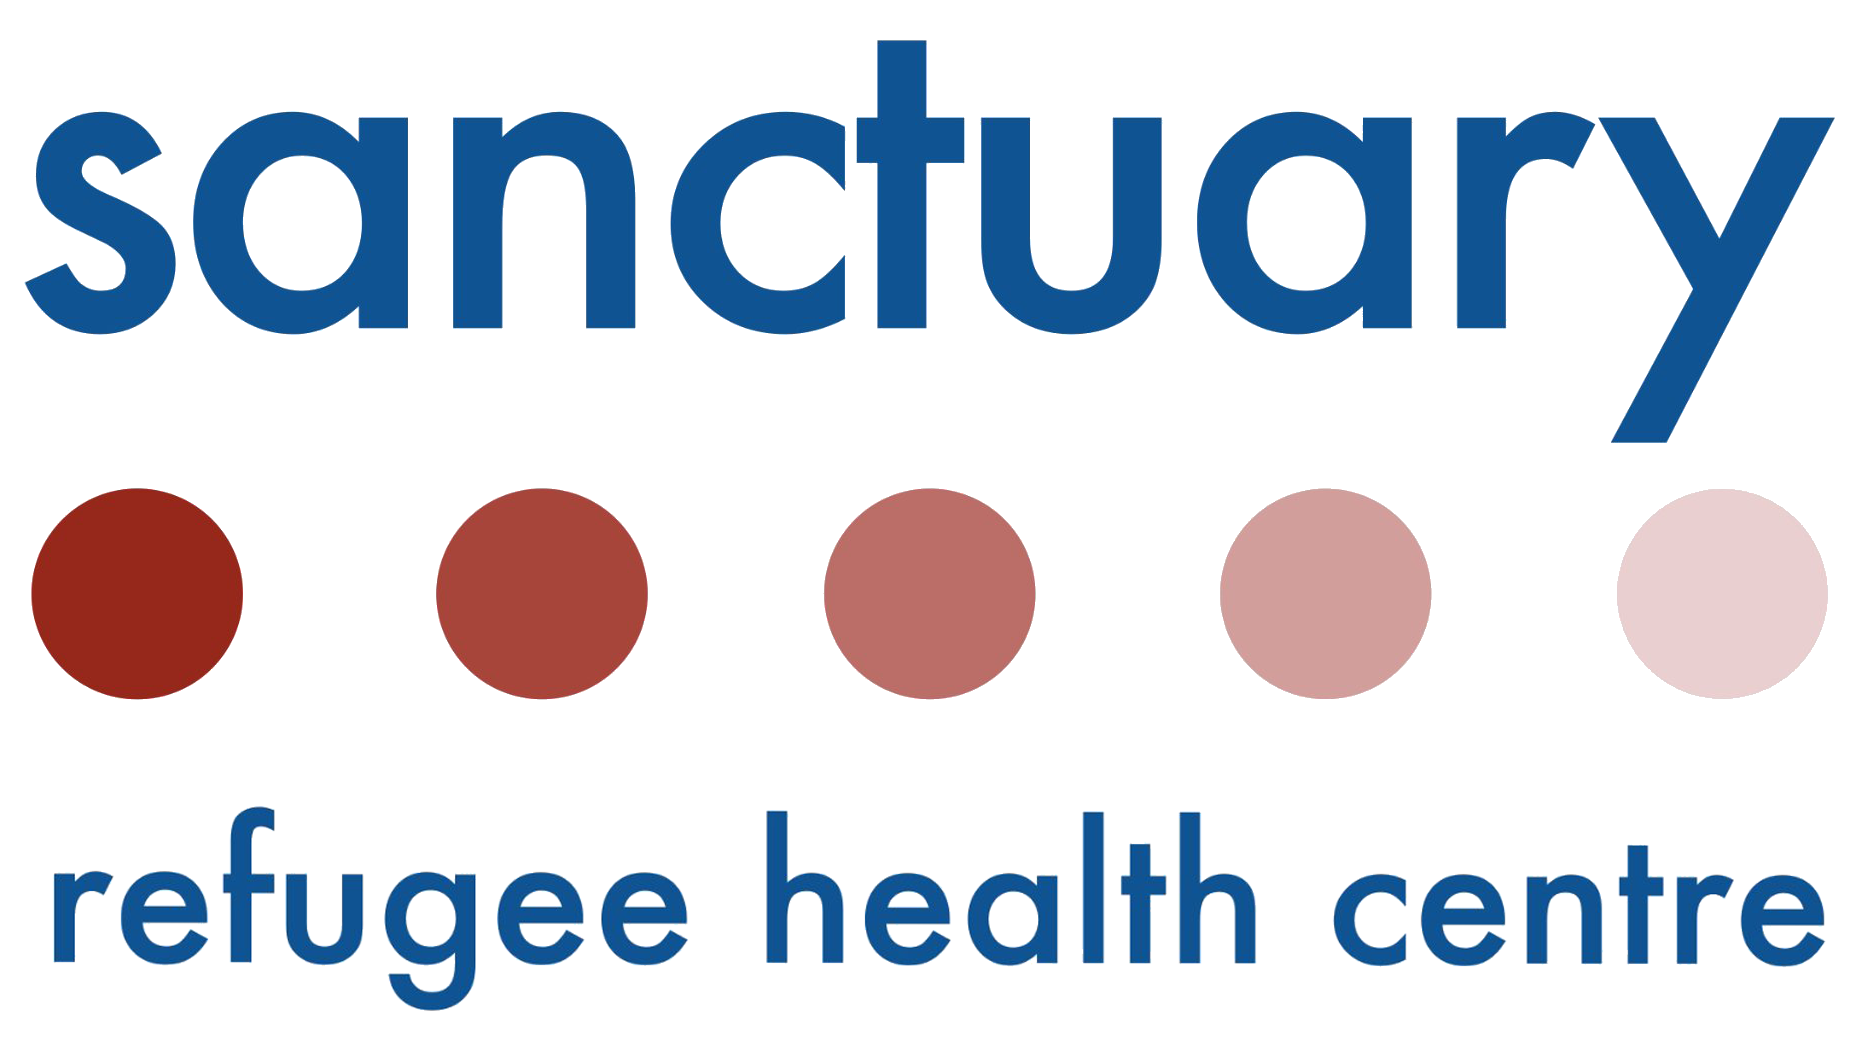 Sanctuary Refugee Health Centre